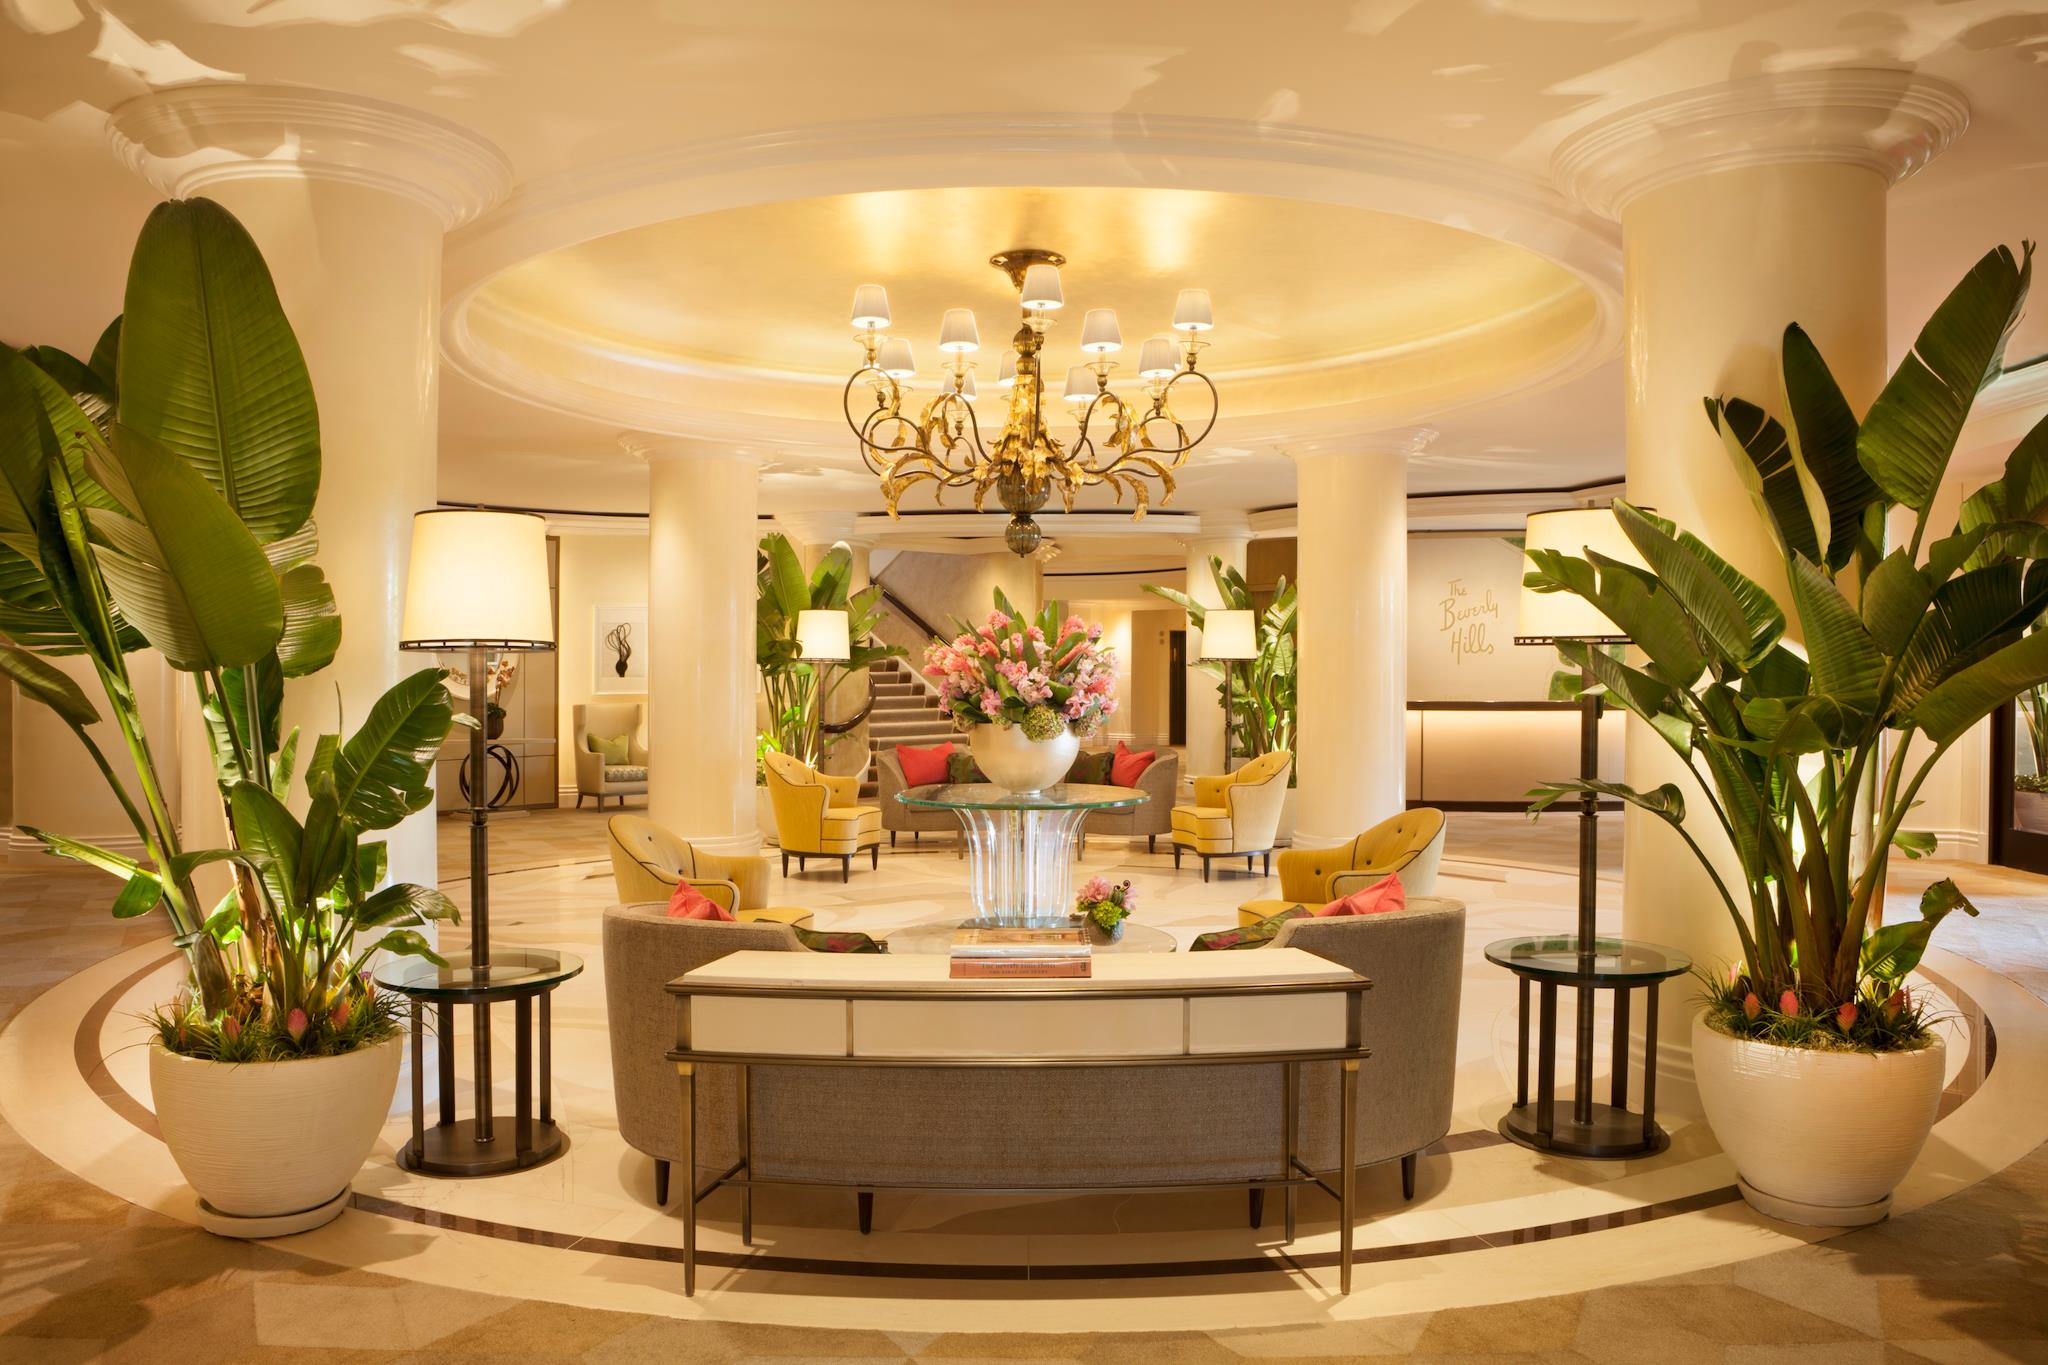 Tropical modern d cor at the beverly hills hotel for Hotel interior decor